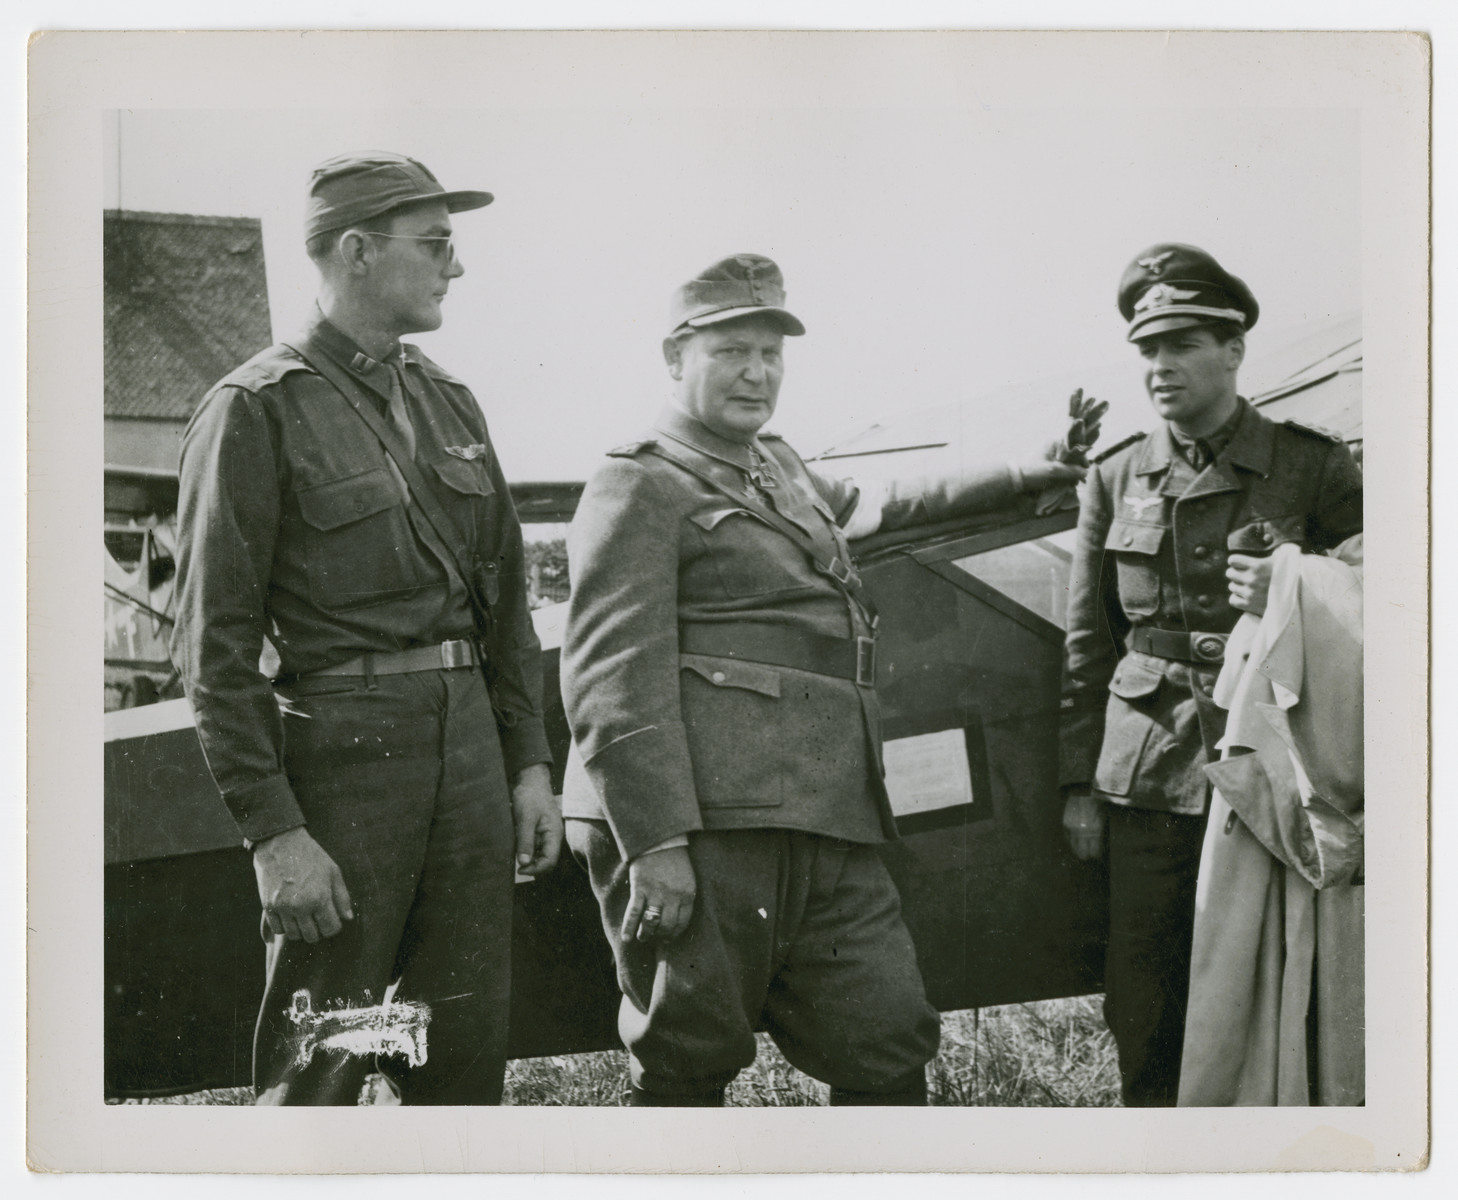 Herman Goering and his adjutant stand next to an airplane accompanied by an American soldier shortly after his capture.